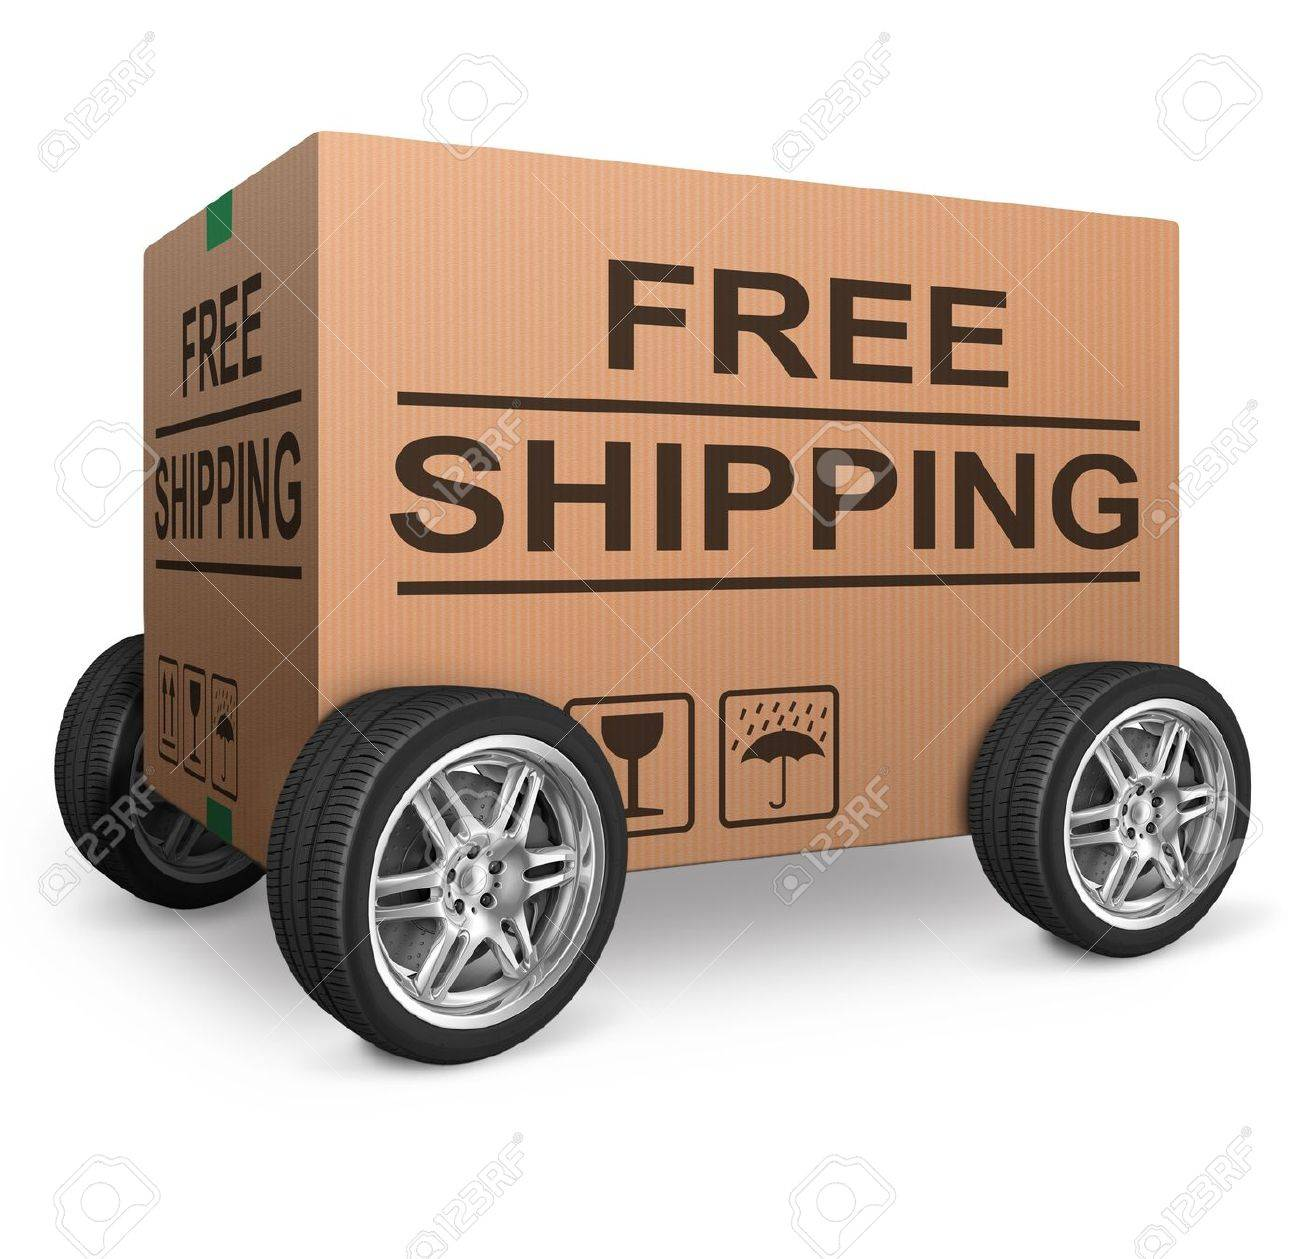 free shipping or package delivery order web shop shipment in cardboard box icon for online shopping ecommerce button Stock Photo - 15978694